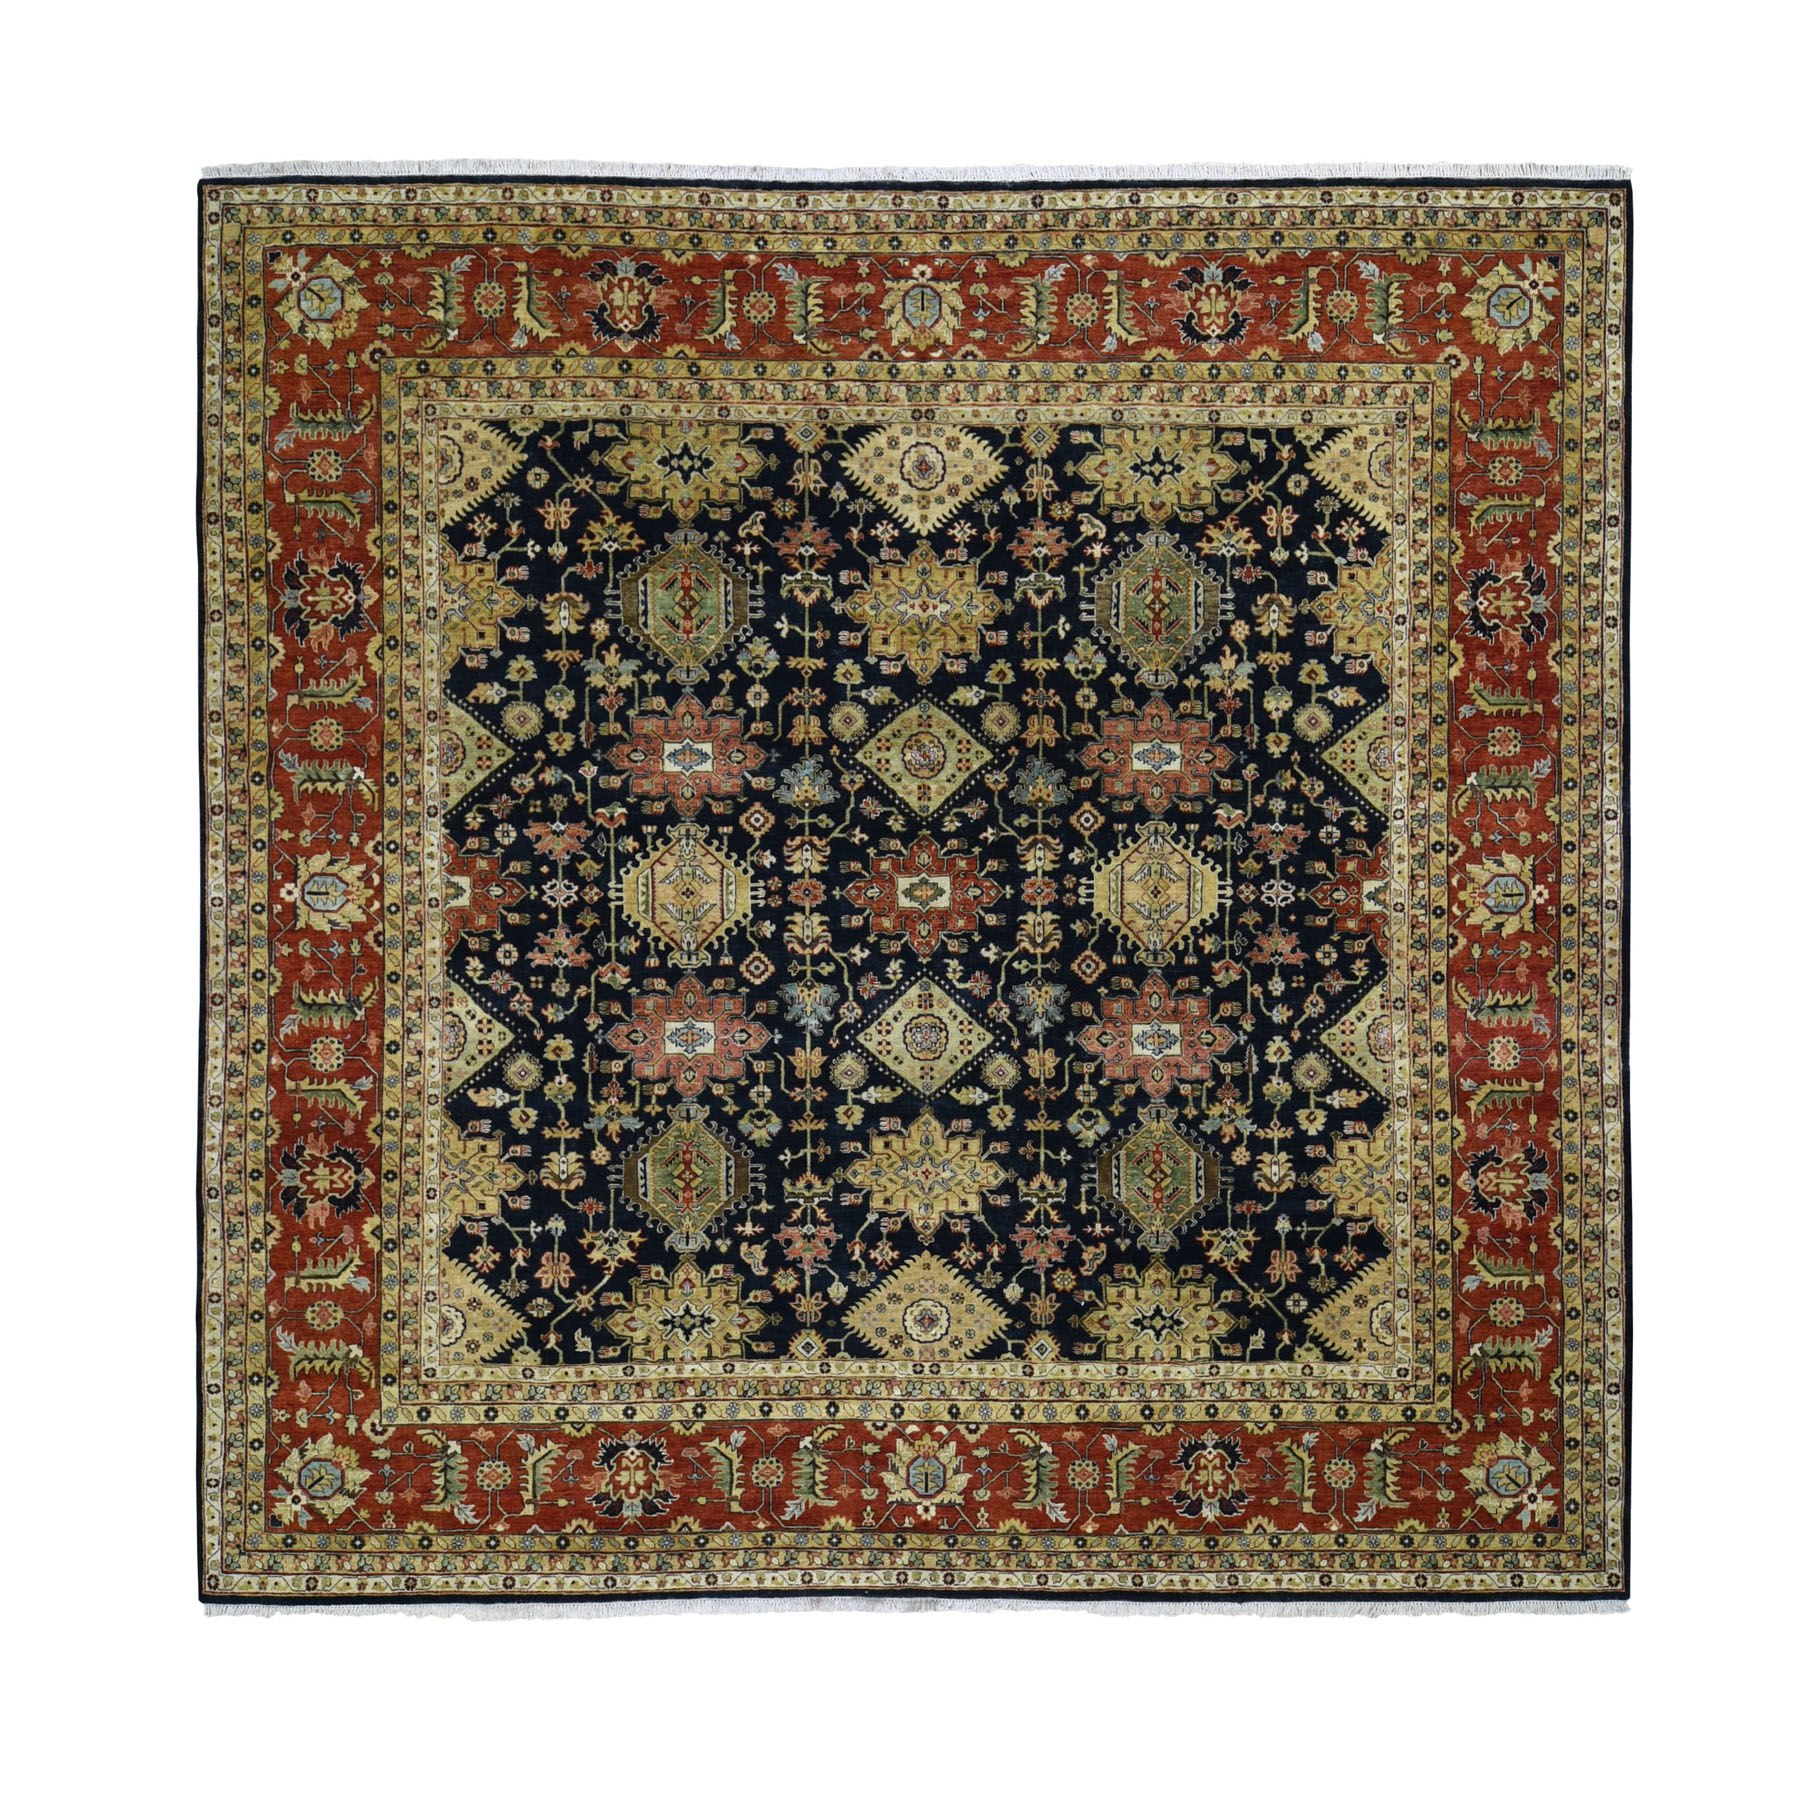 "11'9""x11'9"" Square Pure Wool Black Karajeh Hand Woven Oriental Rug"